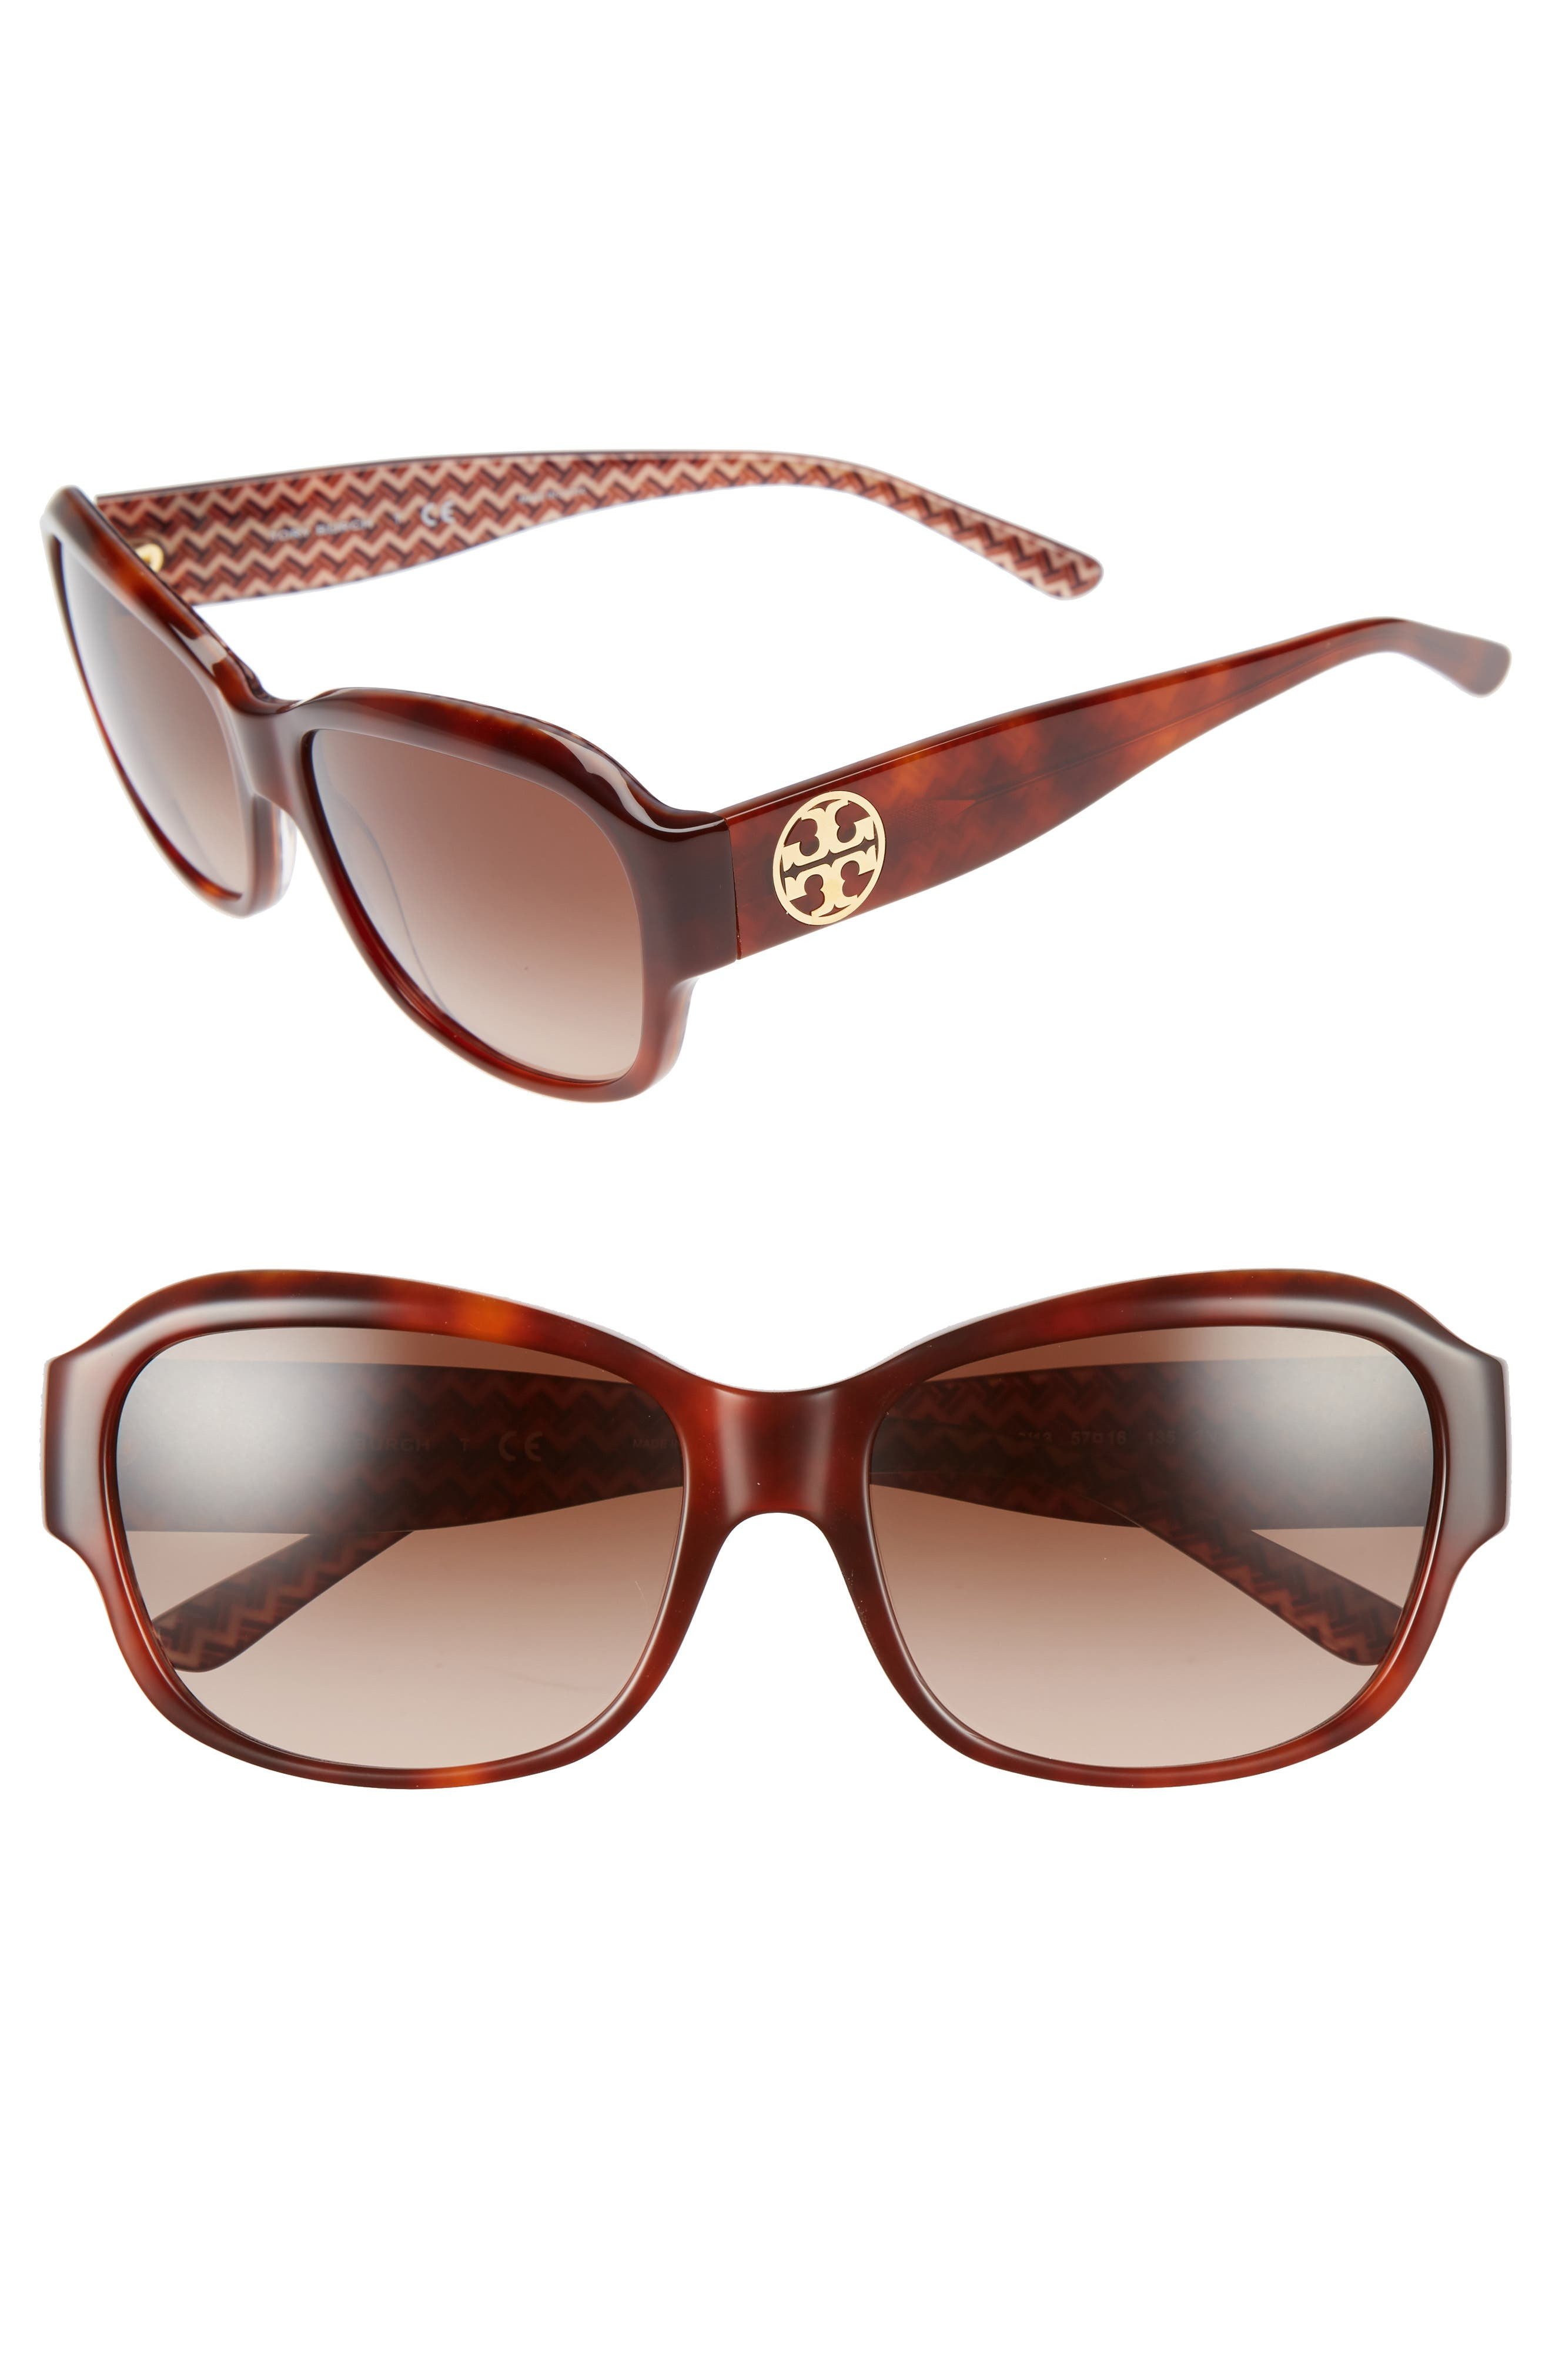 Alternate Image 1 Selected - Tory Burch 57mm Gradient Sunglasses